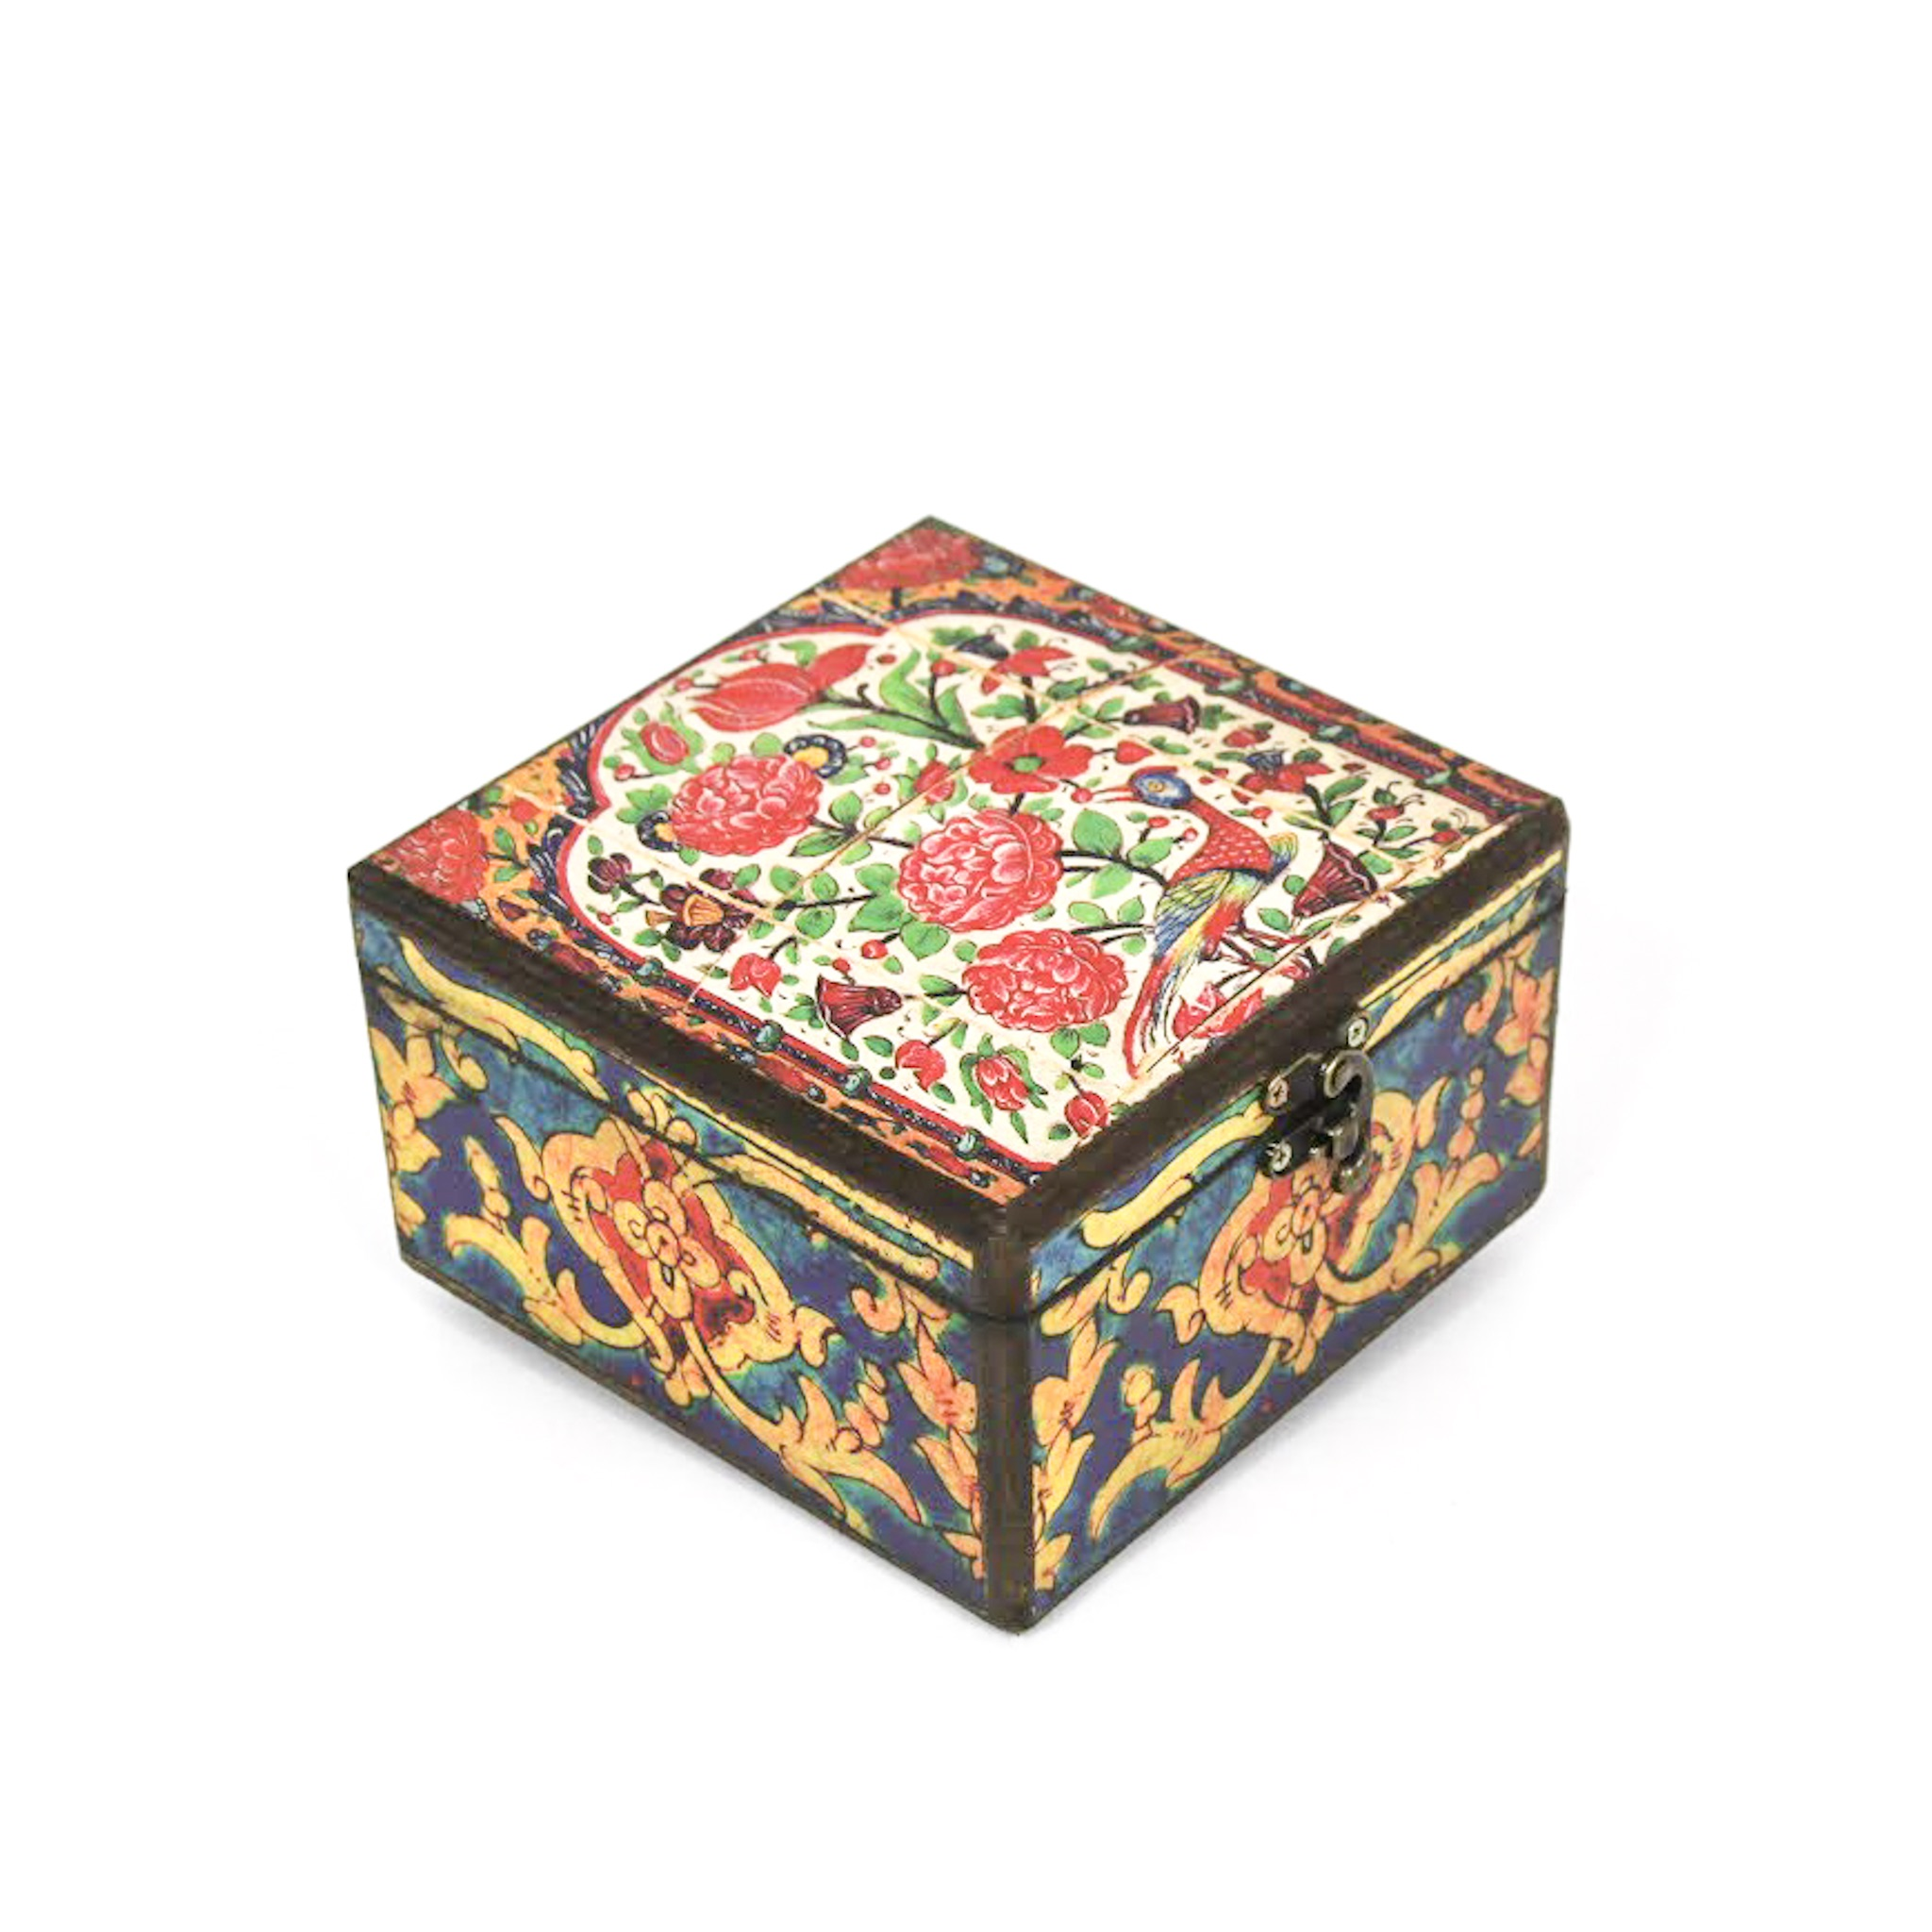 Wooden tea box with Iranian tile patterns code 07 ( available in 3 sizes)